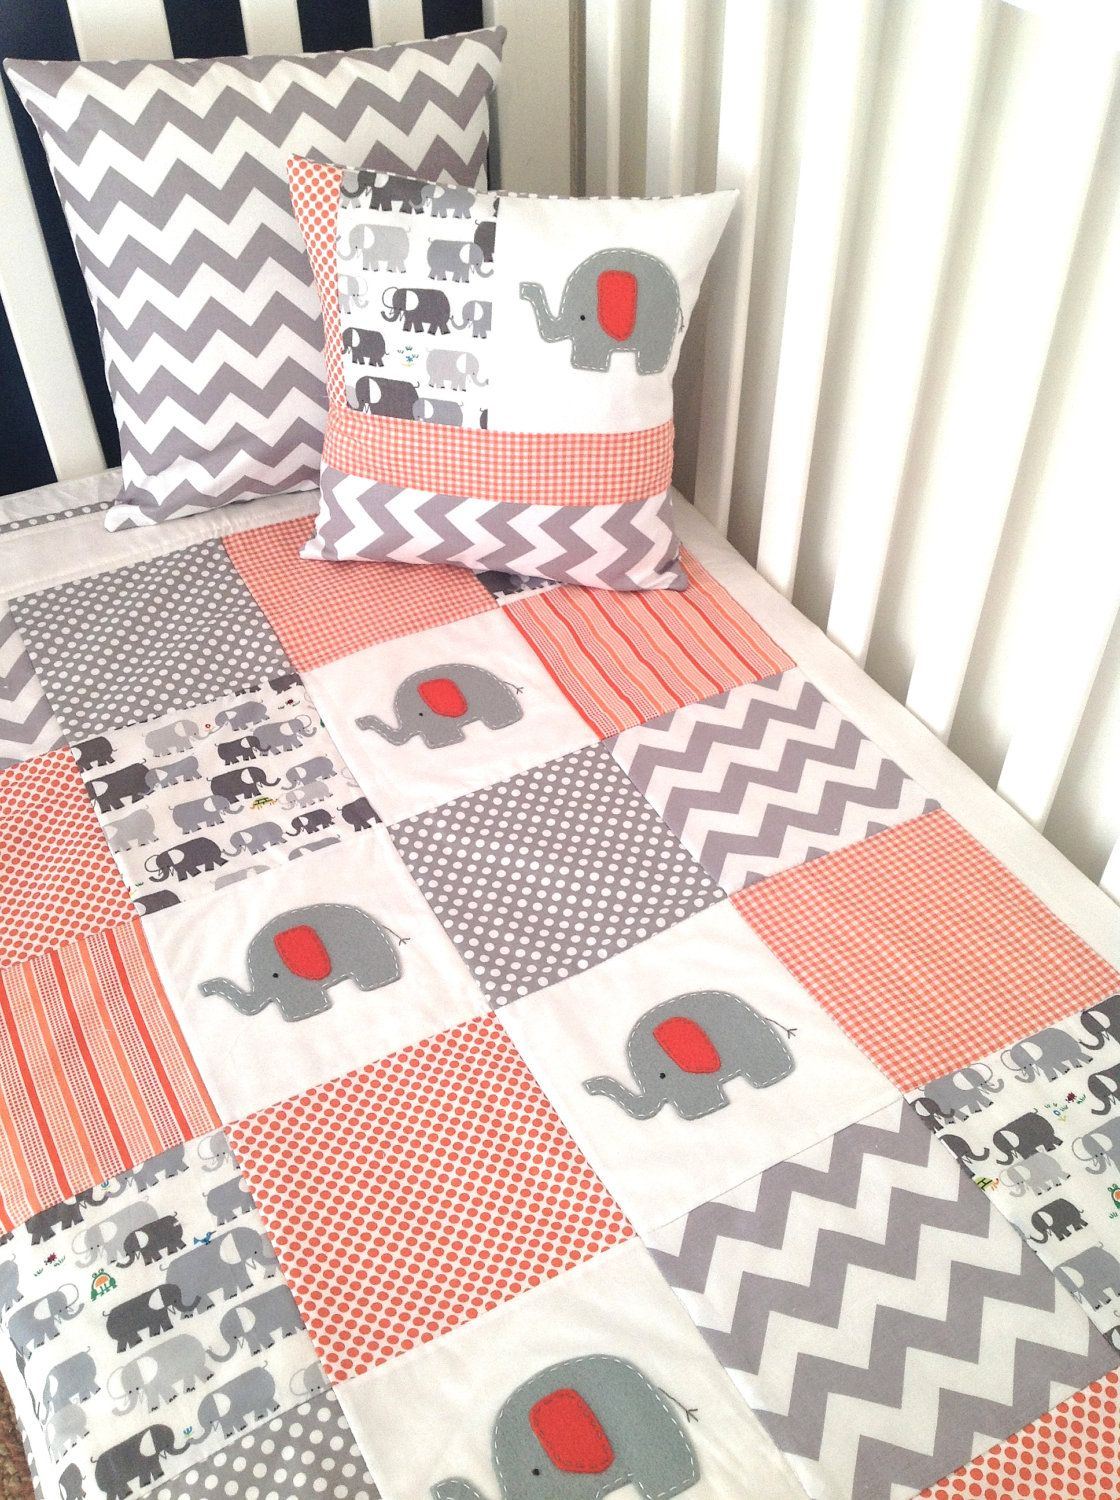 Crib pillows babies - Elephant Baby Quilts Elephant Baby Crib Quilt And Pillow In Orange And Gray